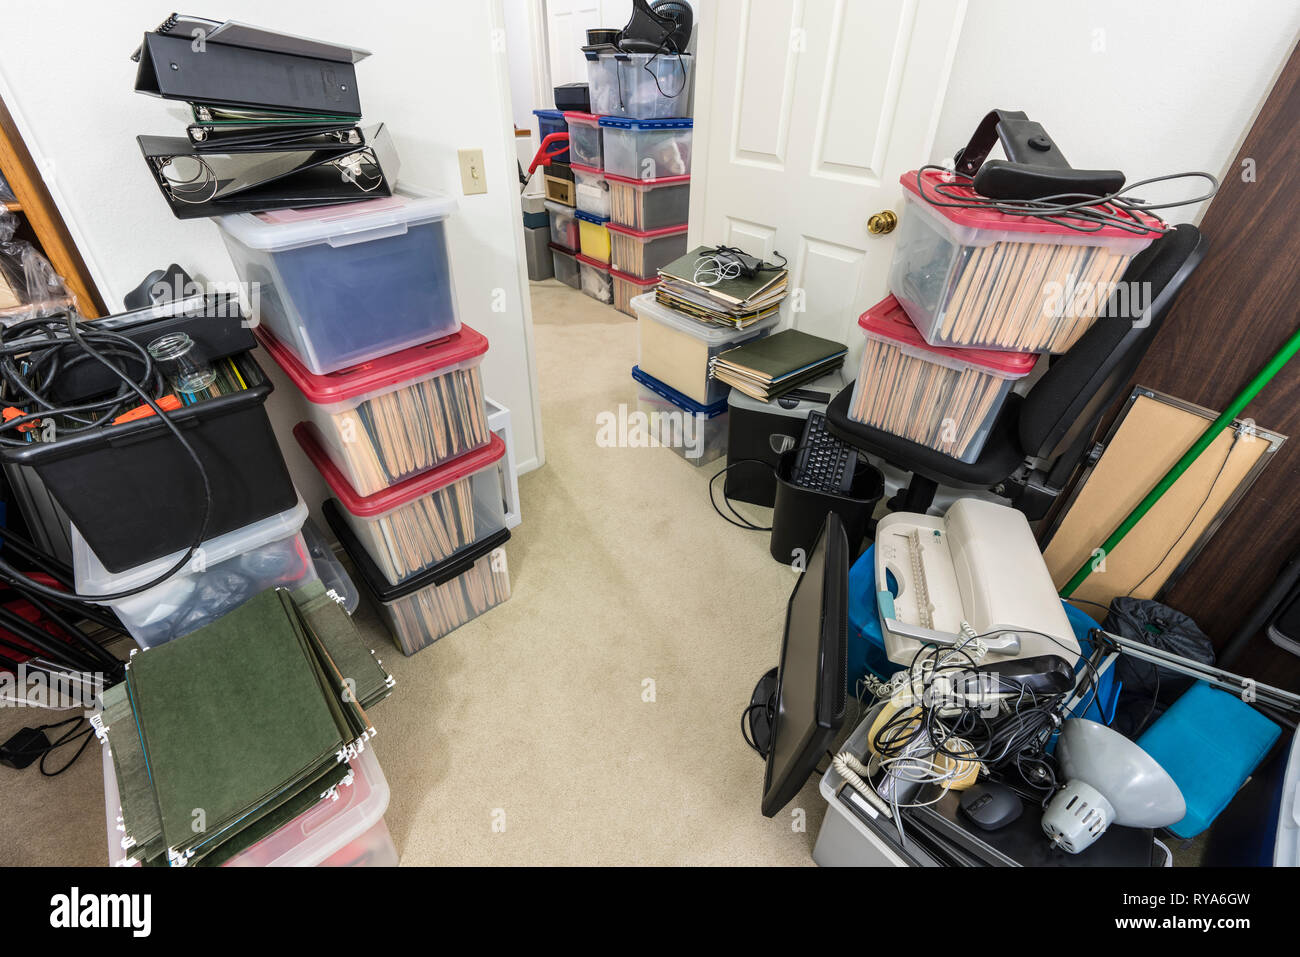 Messy office storage area with boxes, files, old equipment and miscellaneous clutter. - Stock Image